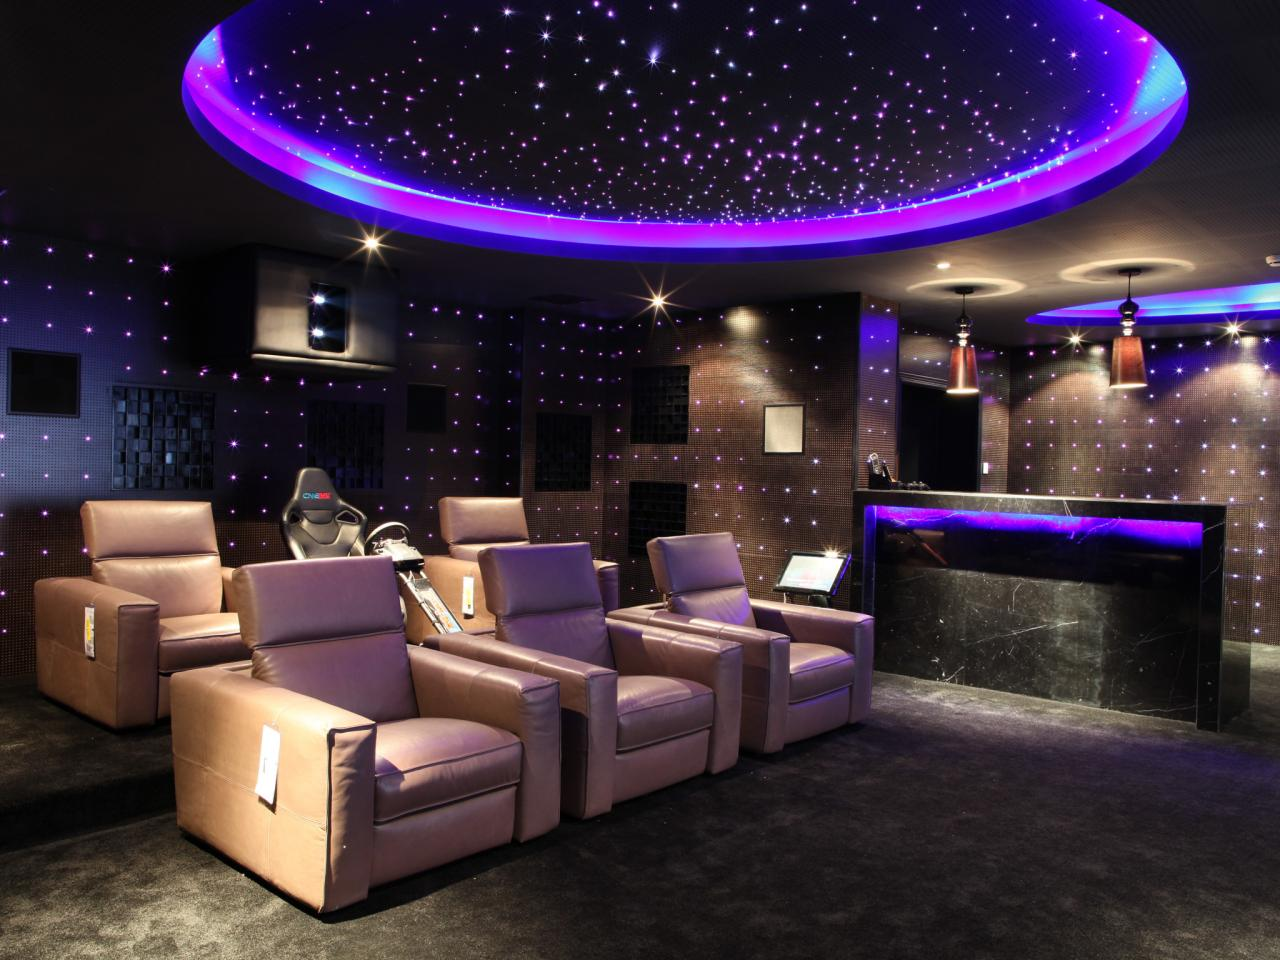 Home Cinema Design Impressive Home Theater Design Ideas Pictures Tips & Options  Hgtv Design Decoration